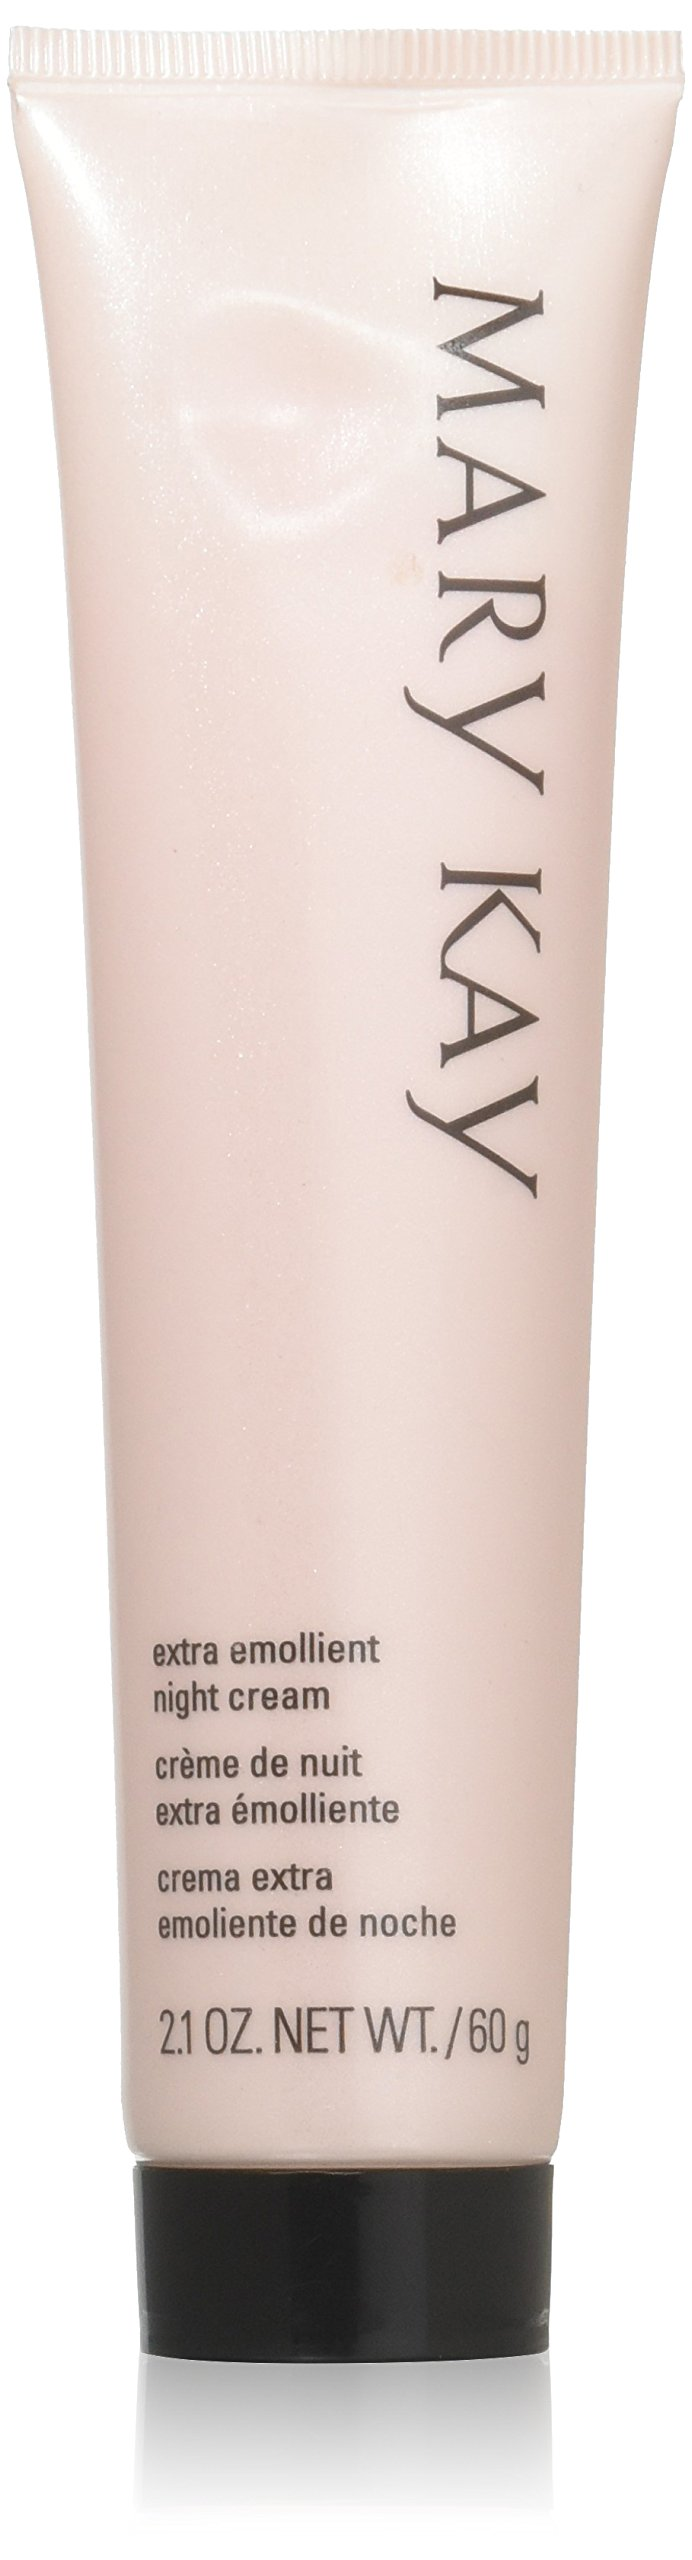 Mary Kay Extra Emollient Night Cream 2.1 ounce by Mary Kay